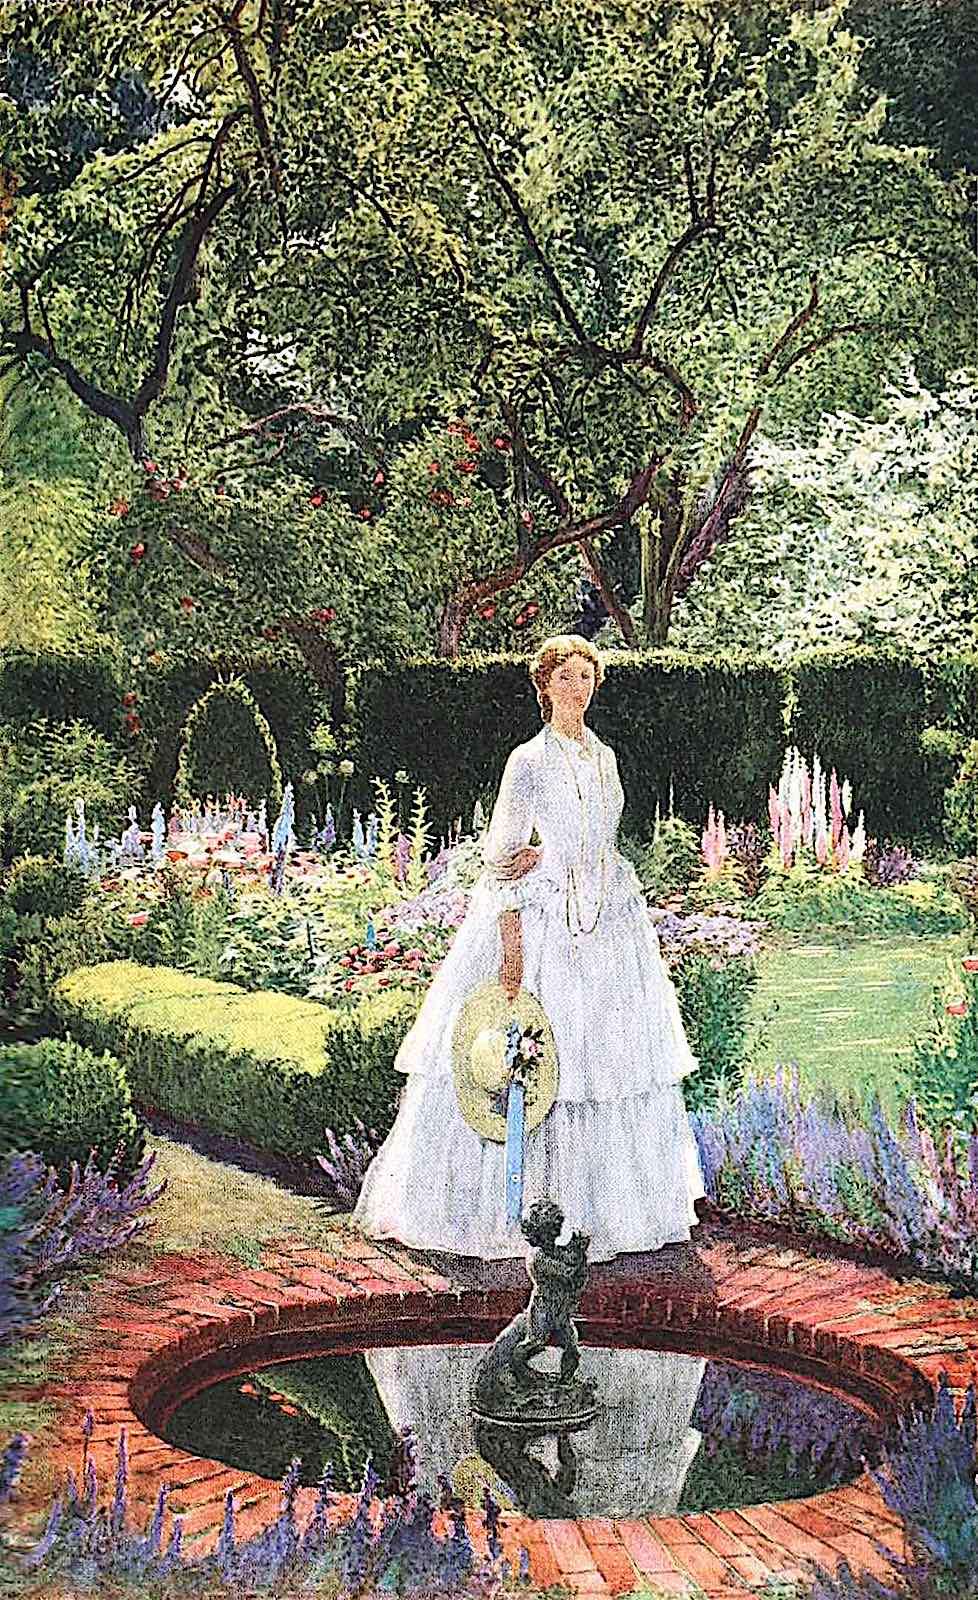 a 1919 Eleanor Fortesque Brickdale illustration of a woman standing by a brick pond in an English garden garden